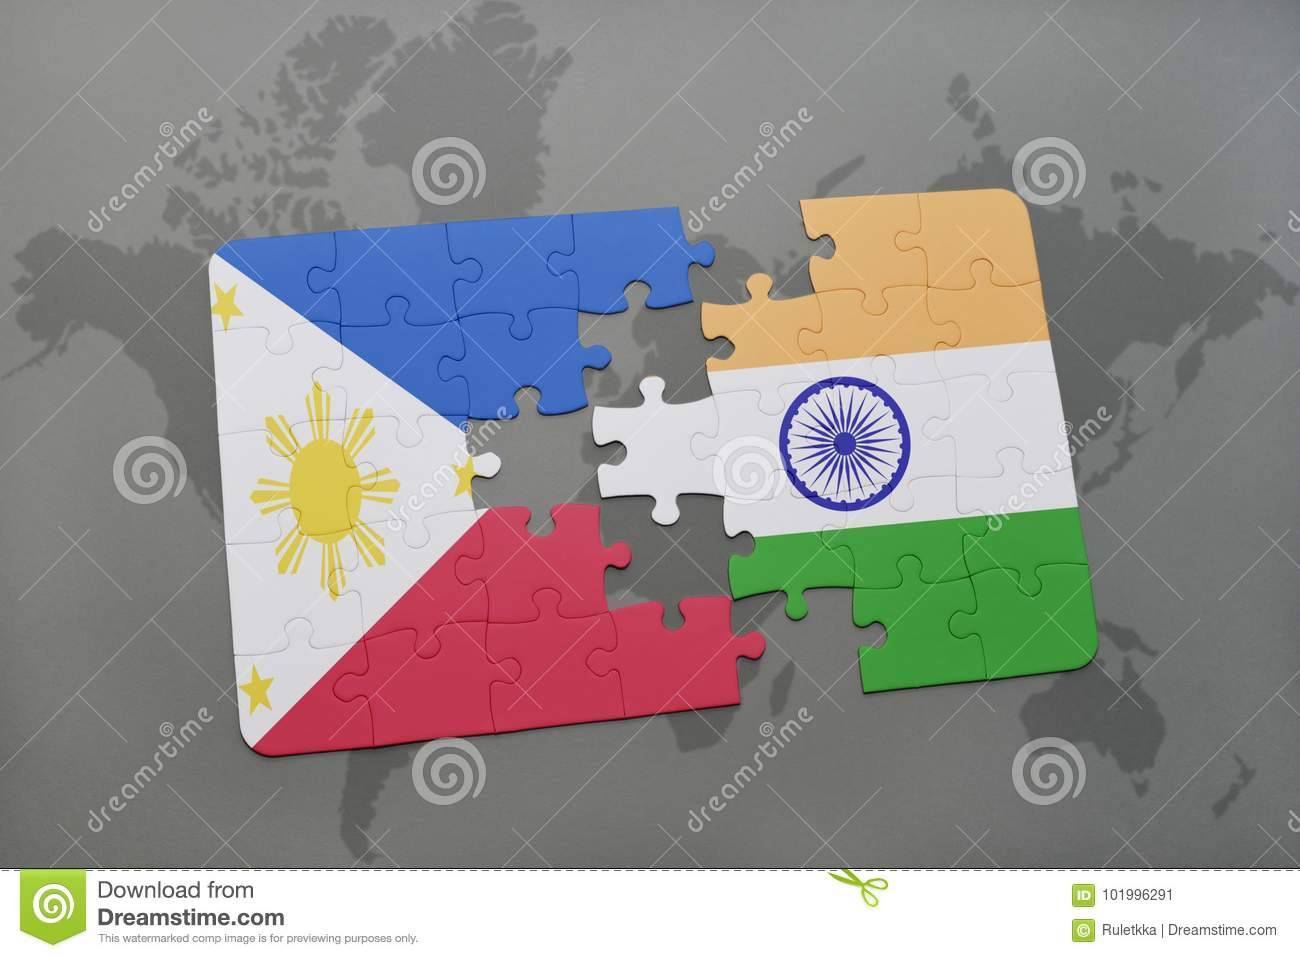 Puzzle with the national flag of philippines and india on a world puzzle with the national flag of philippines and india on a world map background stock illustration illustration of against aggression 101996291 gumiabroncs Choice Image